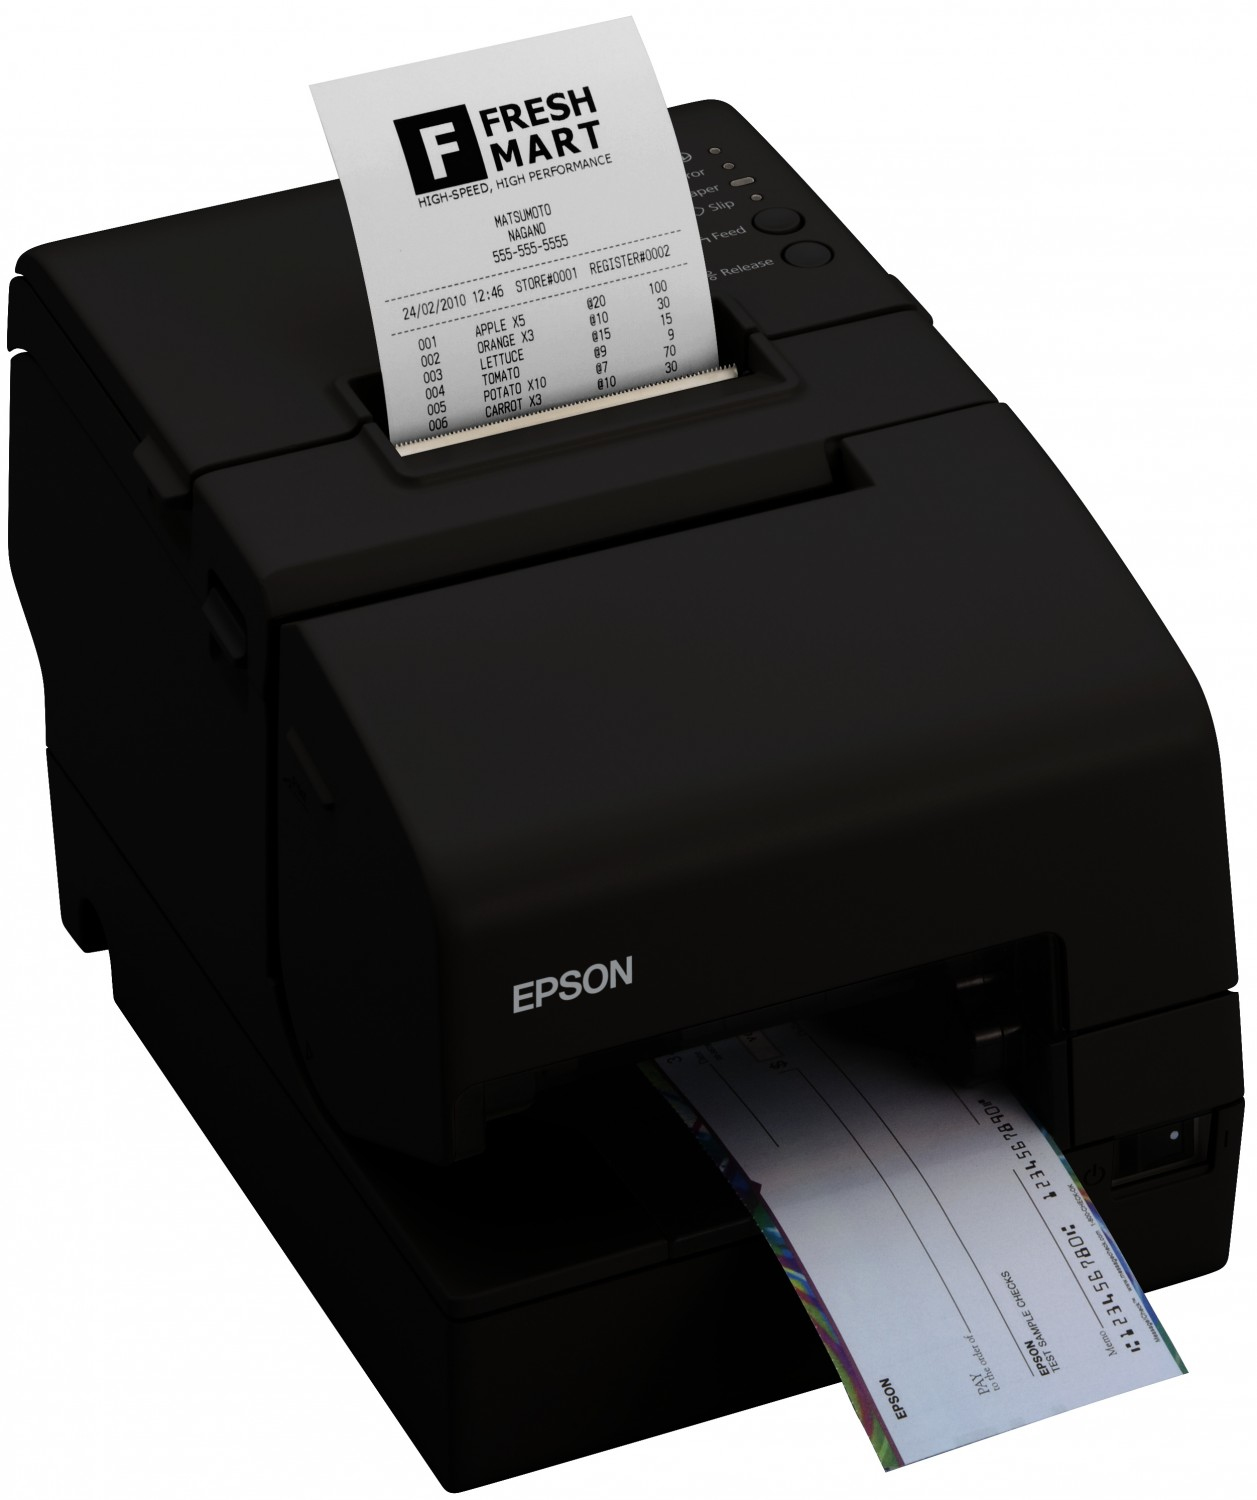 Epson TM-H6000IV Series Thermodruck POS printer 180 x 180DPI Schwarz